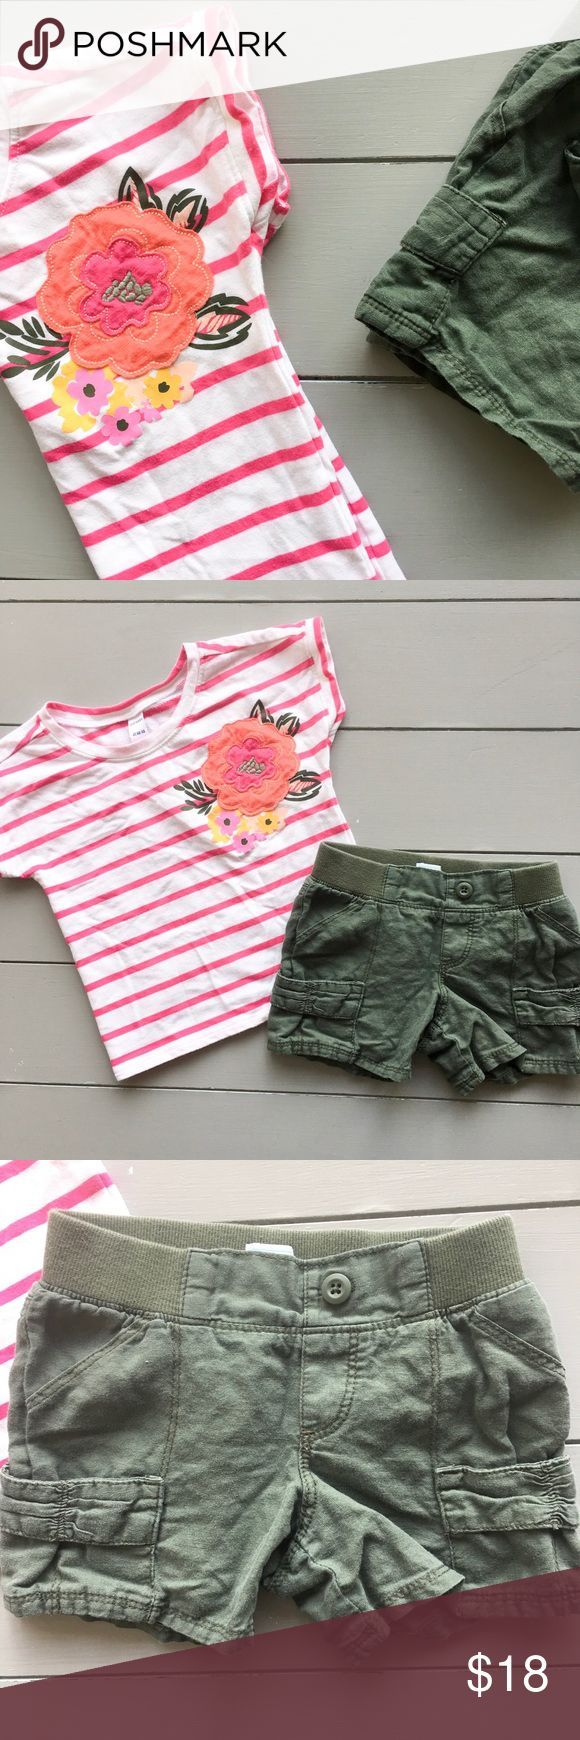 Old Navy Spring outfit Adorable spring/summer outfit for girls, size 4T from Old Navy, in excellent condition, barely worn. Includes striped dolman top with olive linen style shorts. Too cute!💖😍 Old Navy Matching Sets